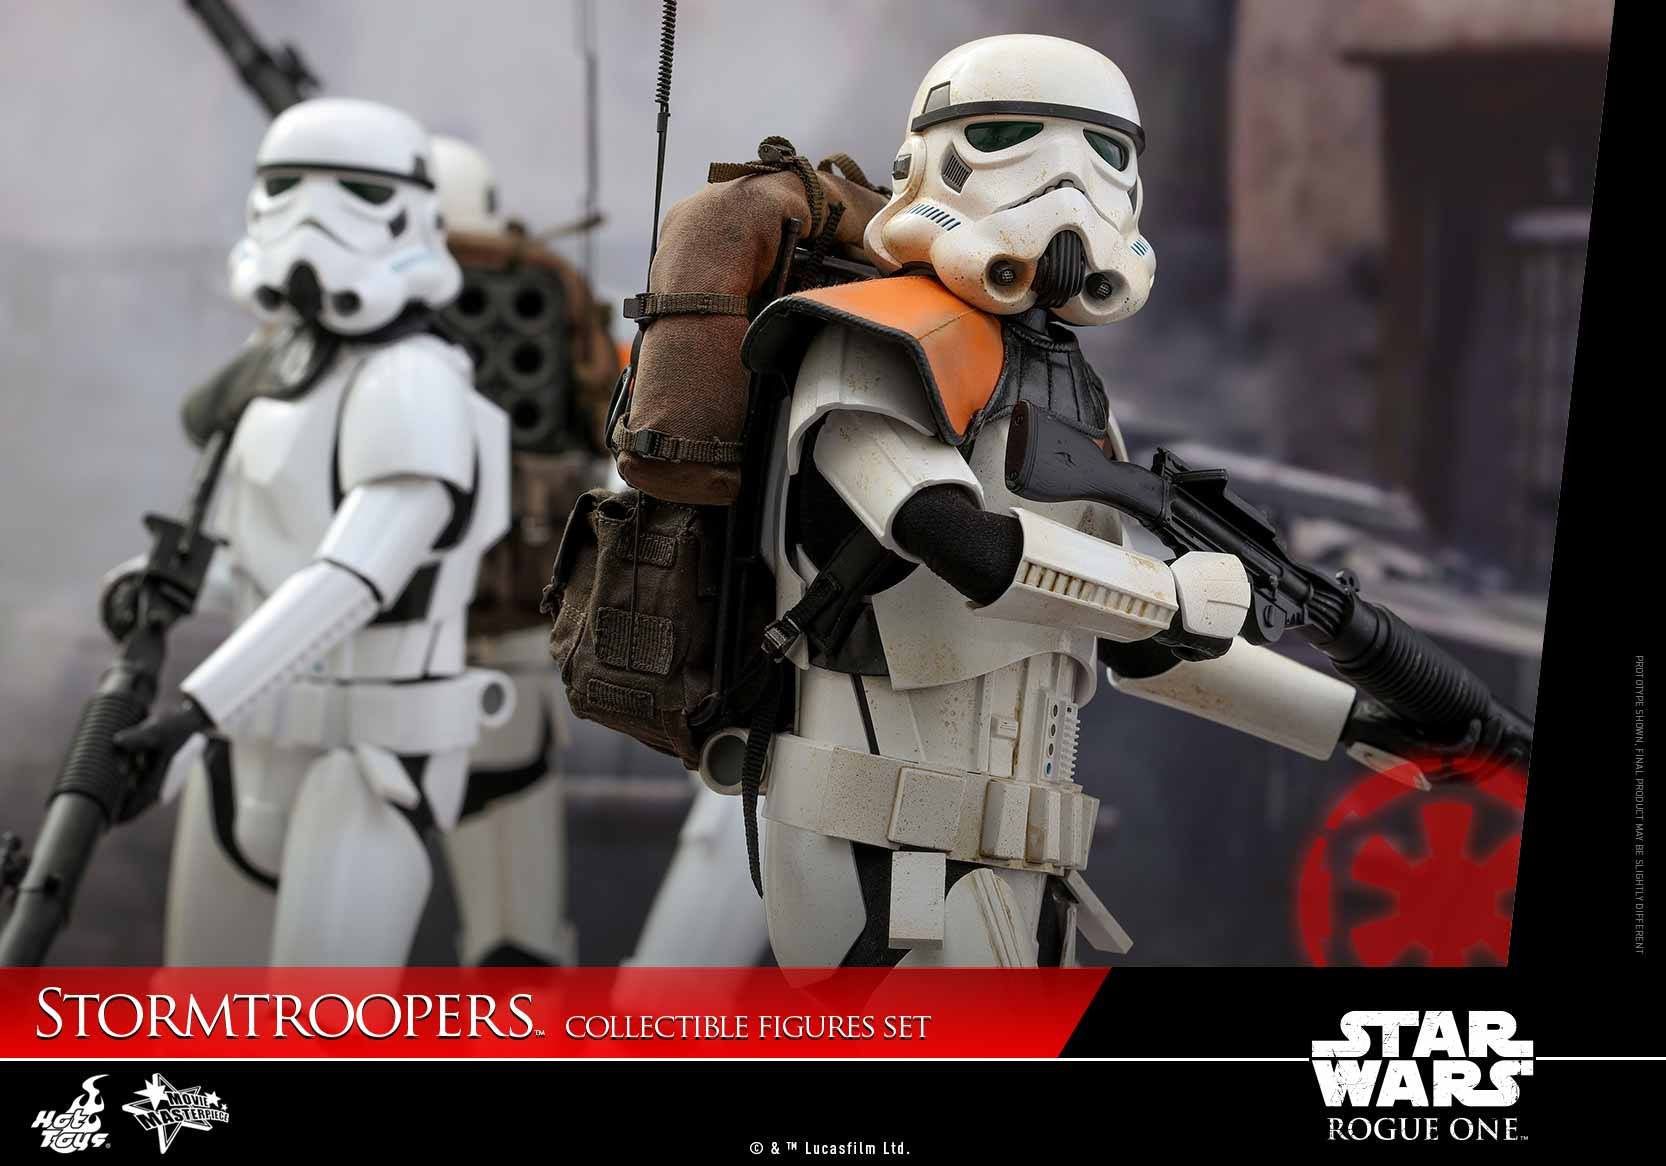 Hot Toys - MMS394 - Rogue One: A Star Wars Story - Stormtroopers Set - Marvelous Toys - 2